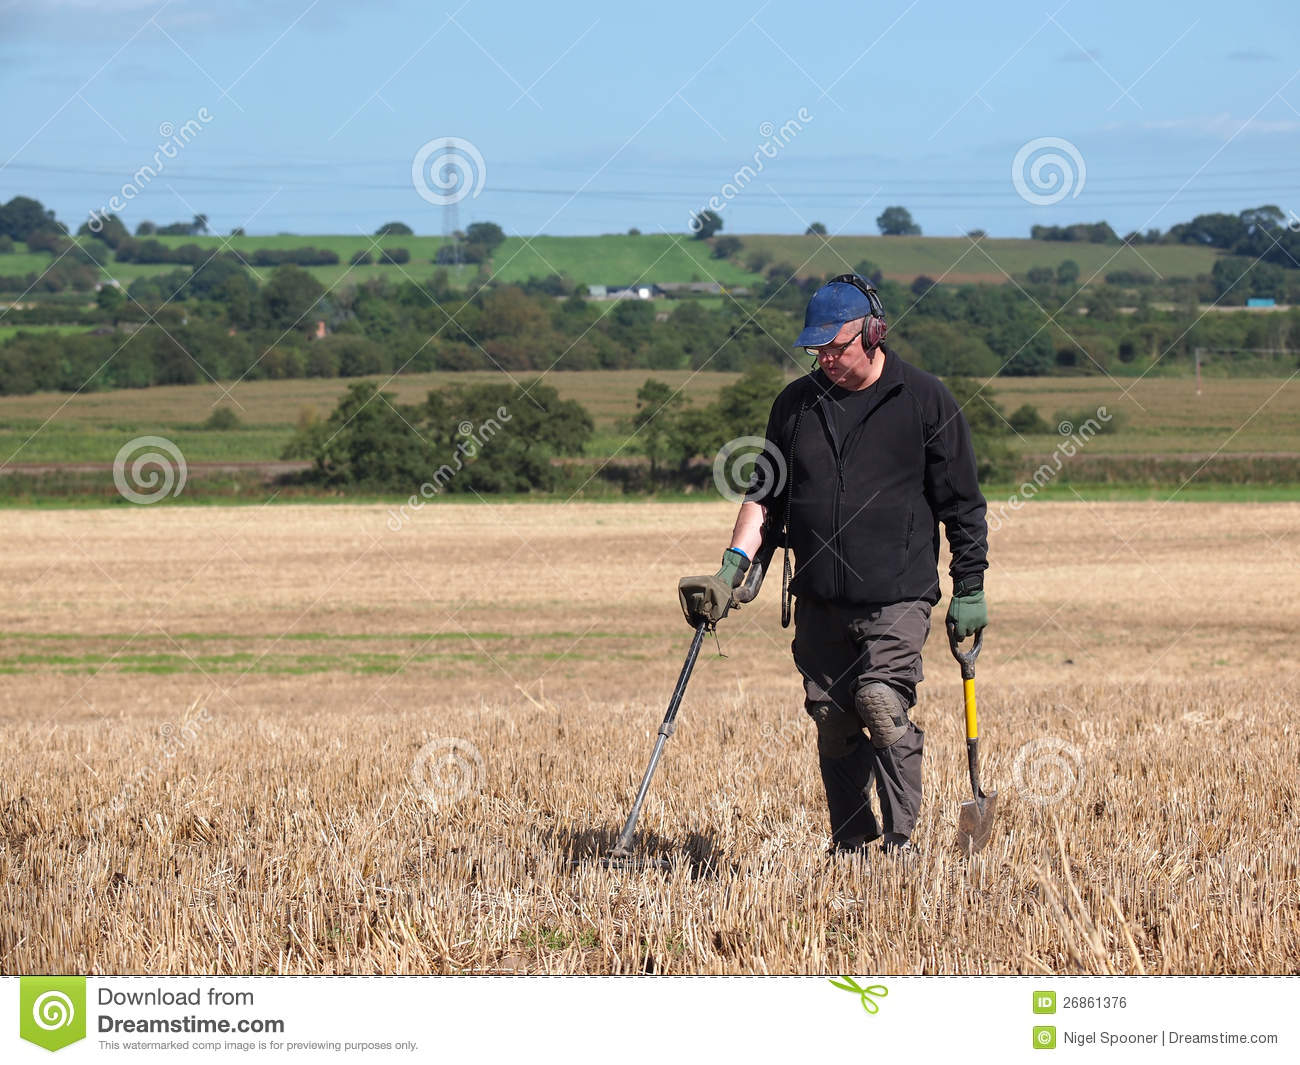 Jew Detector: Using A Metal Detector In Field Royalty Free Stock Image